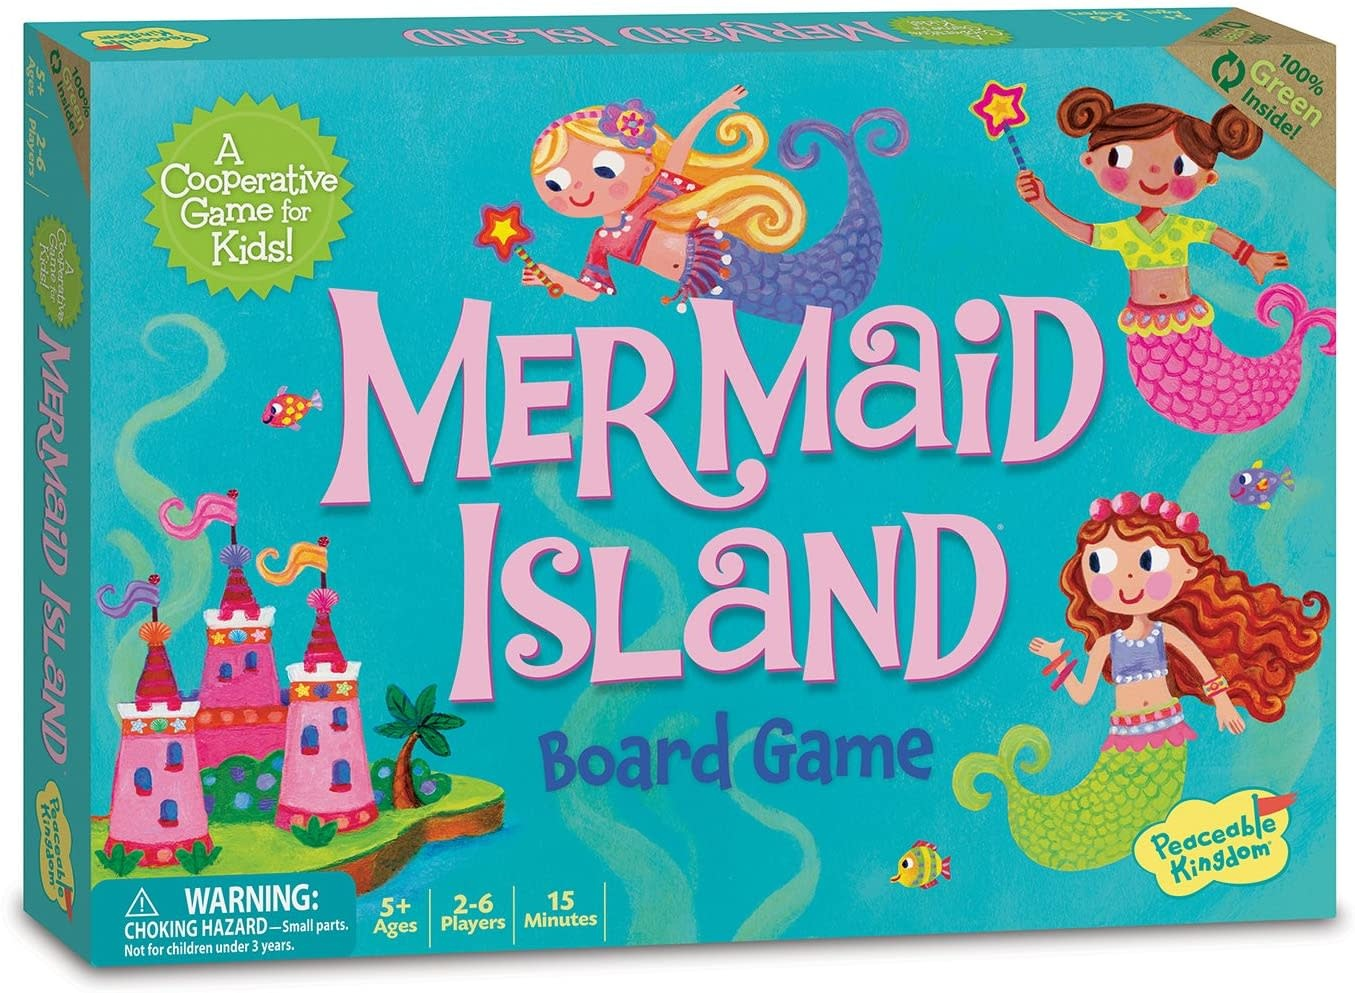 Mermaid Island Game by Peaceable Kingdom